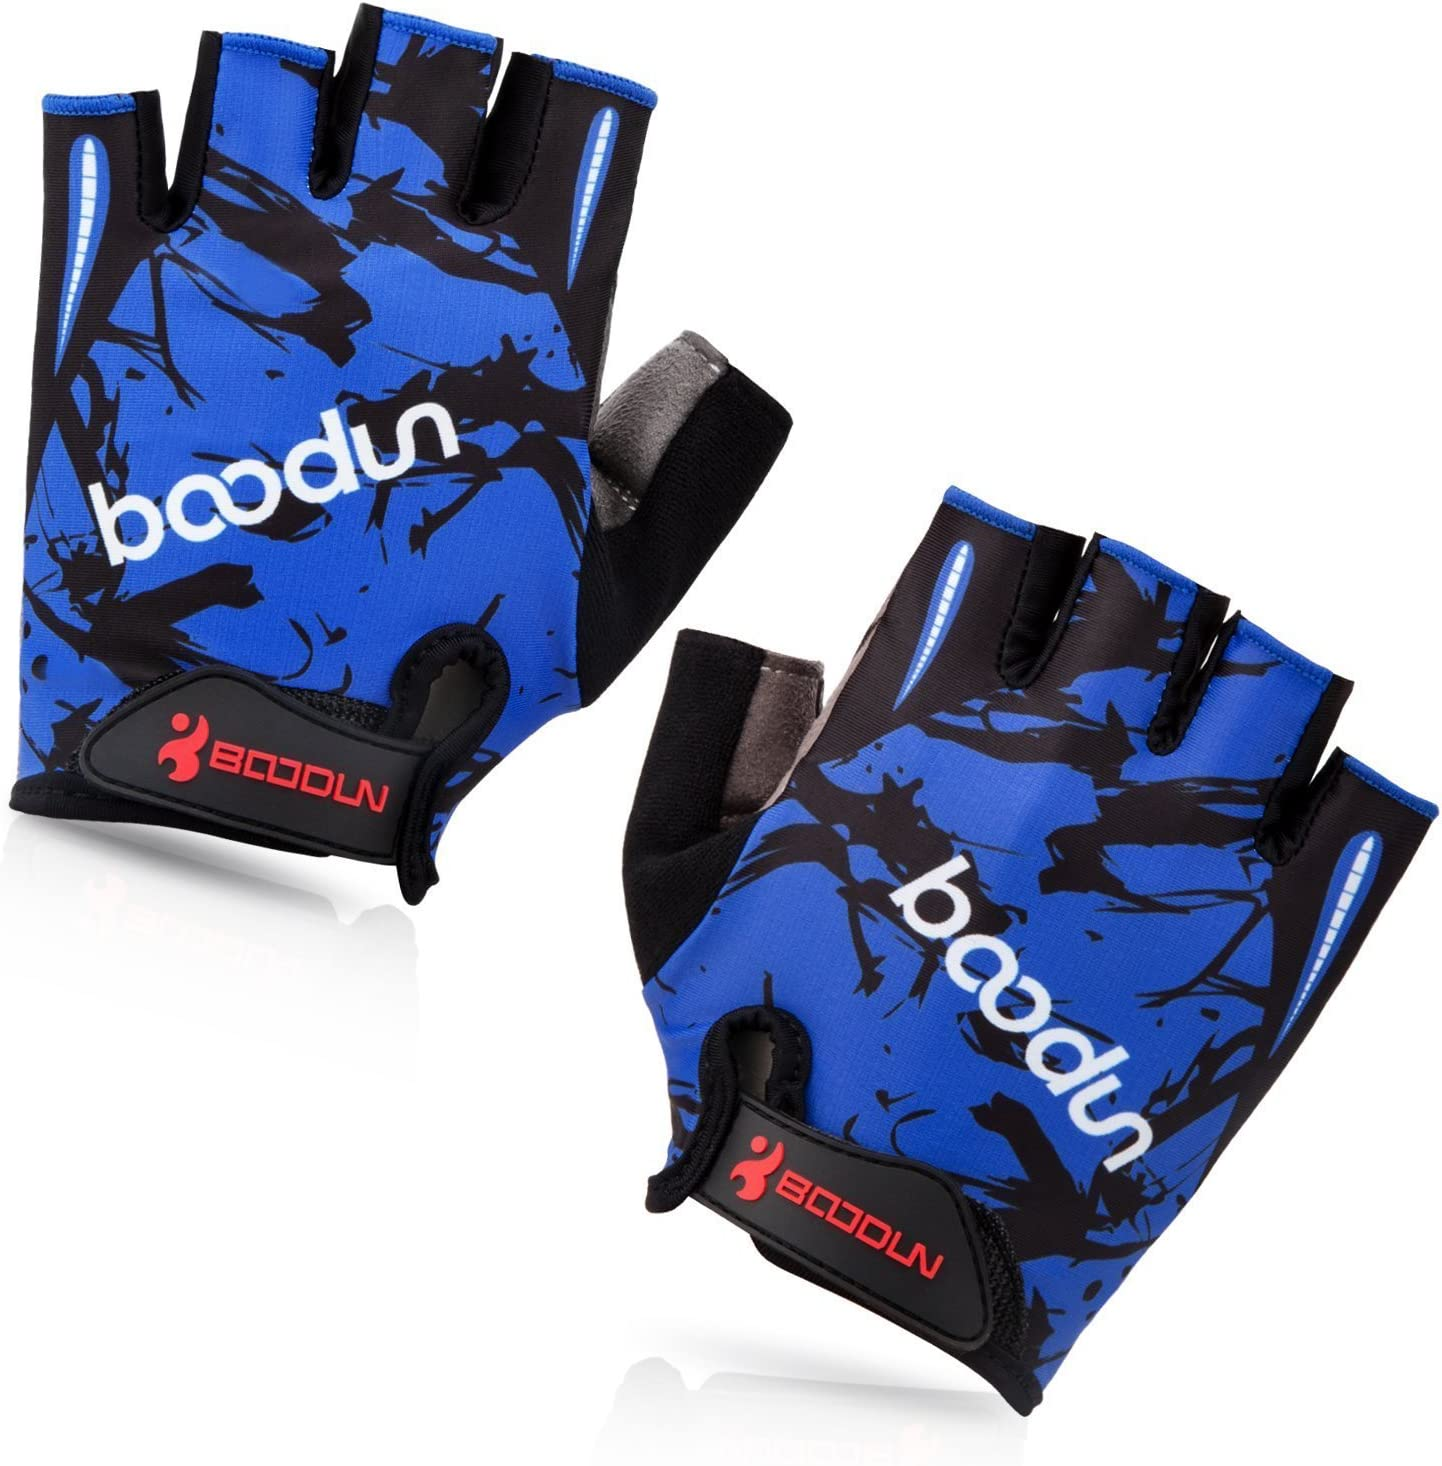 BOODUN Max 40% OFF Cycling Gloves with Shock-Absorbing Pad Breathable H Foam San Antonio Mall